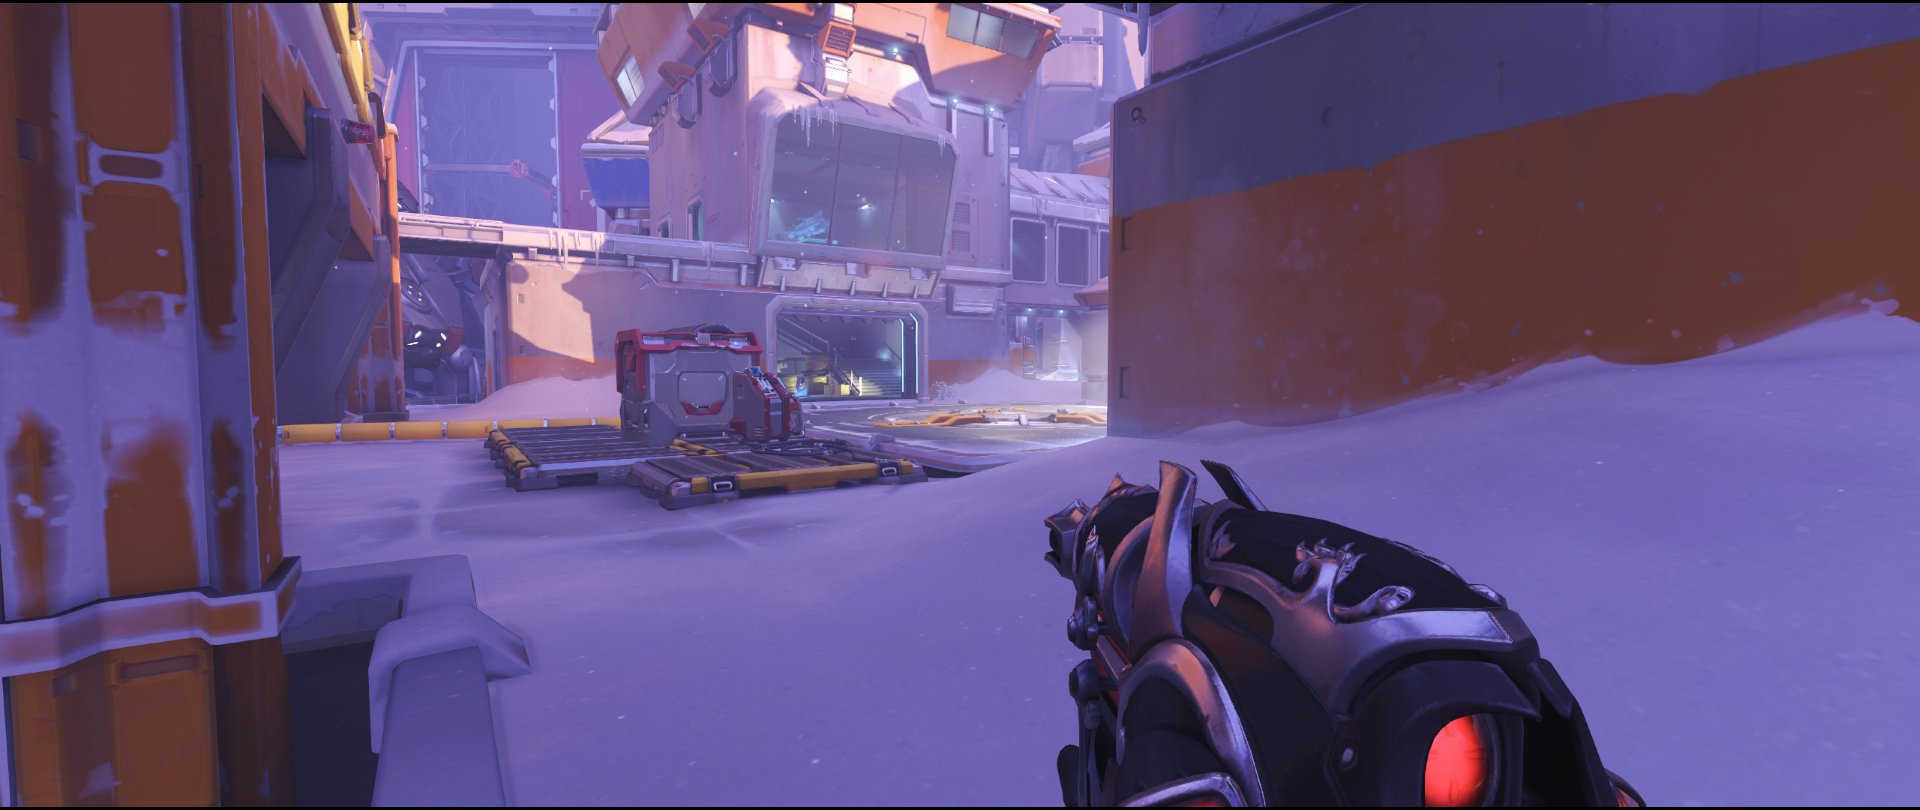 Left side Comms view attack sniping spot Widowmaker Volskaya Industries Overwatch.jpg